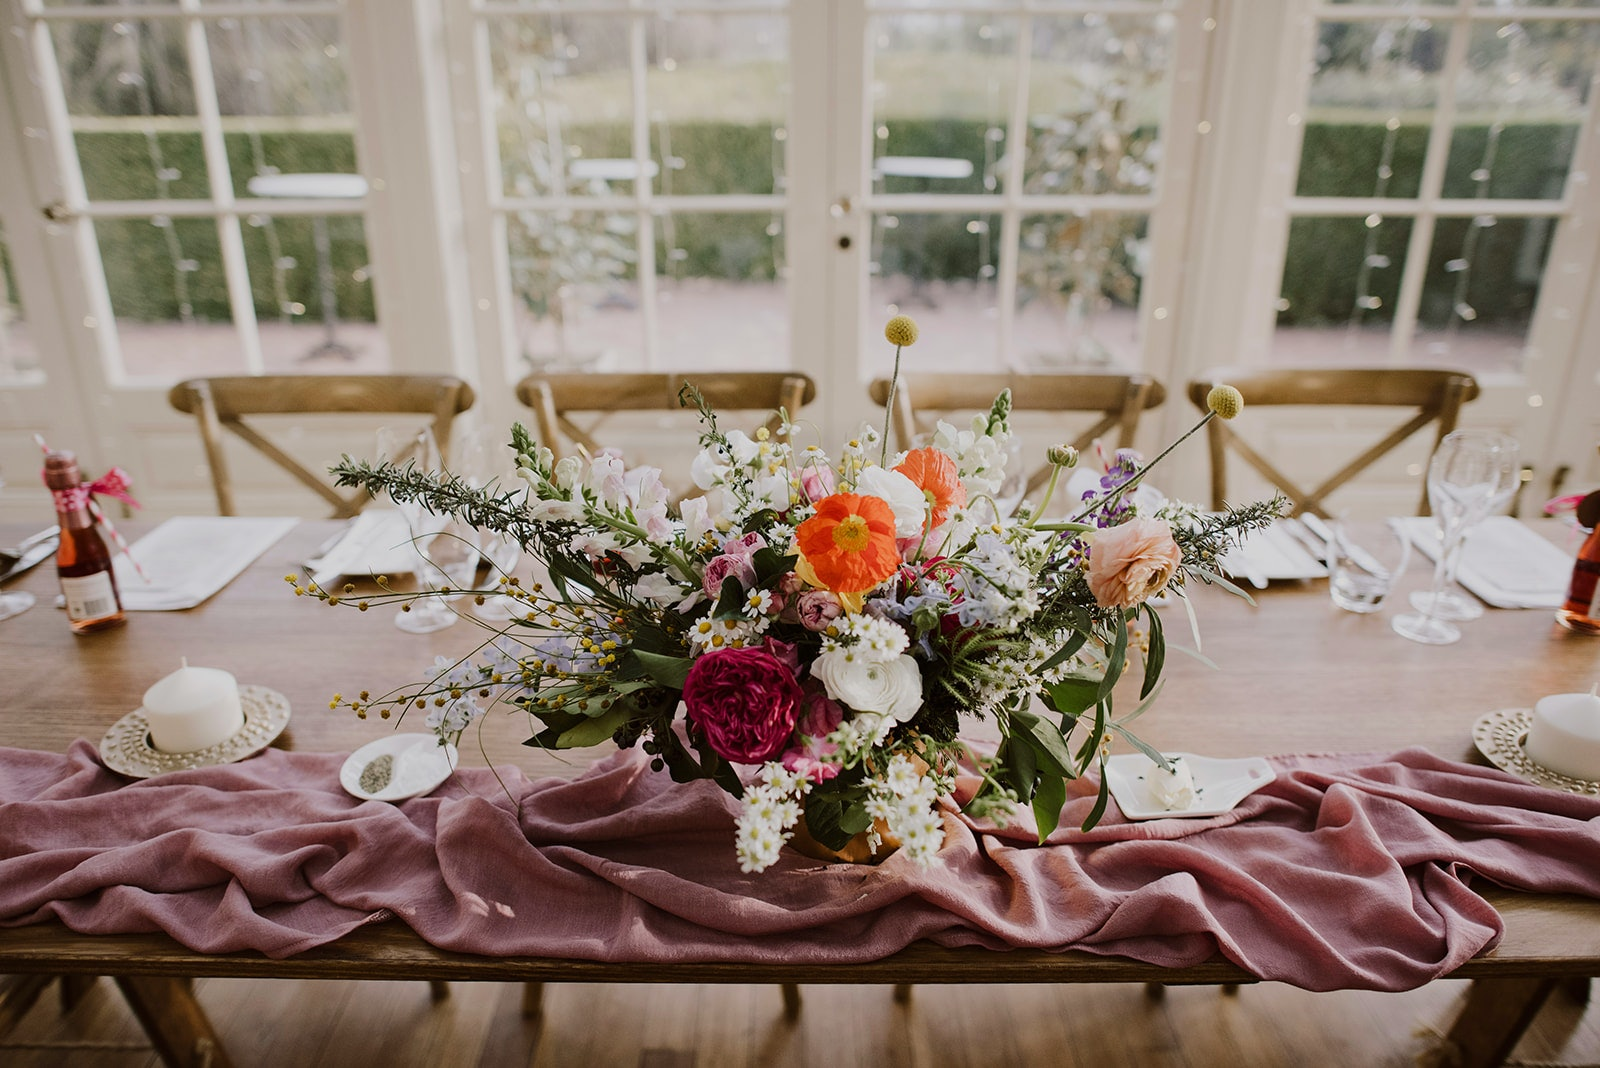 Pink and red flowers line the edge of a bridal table